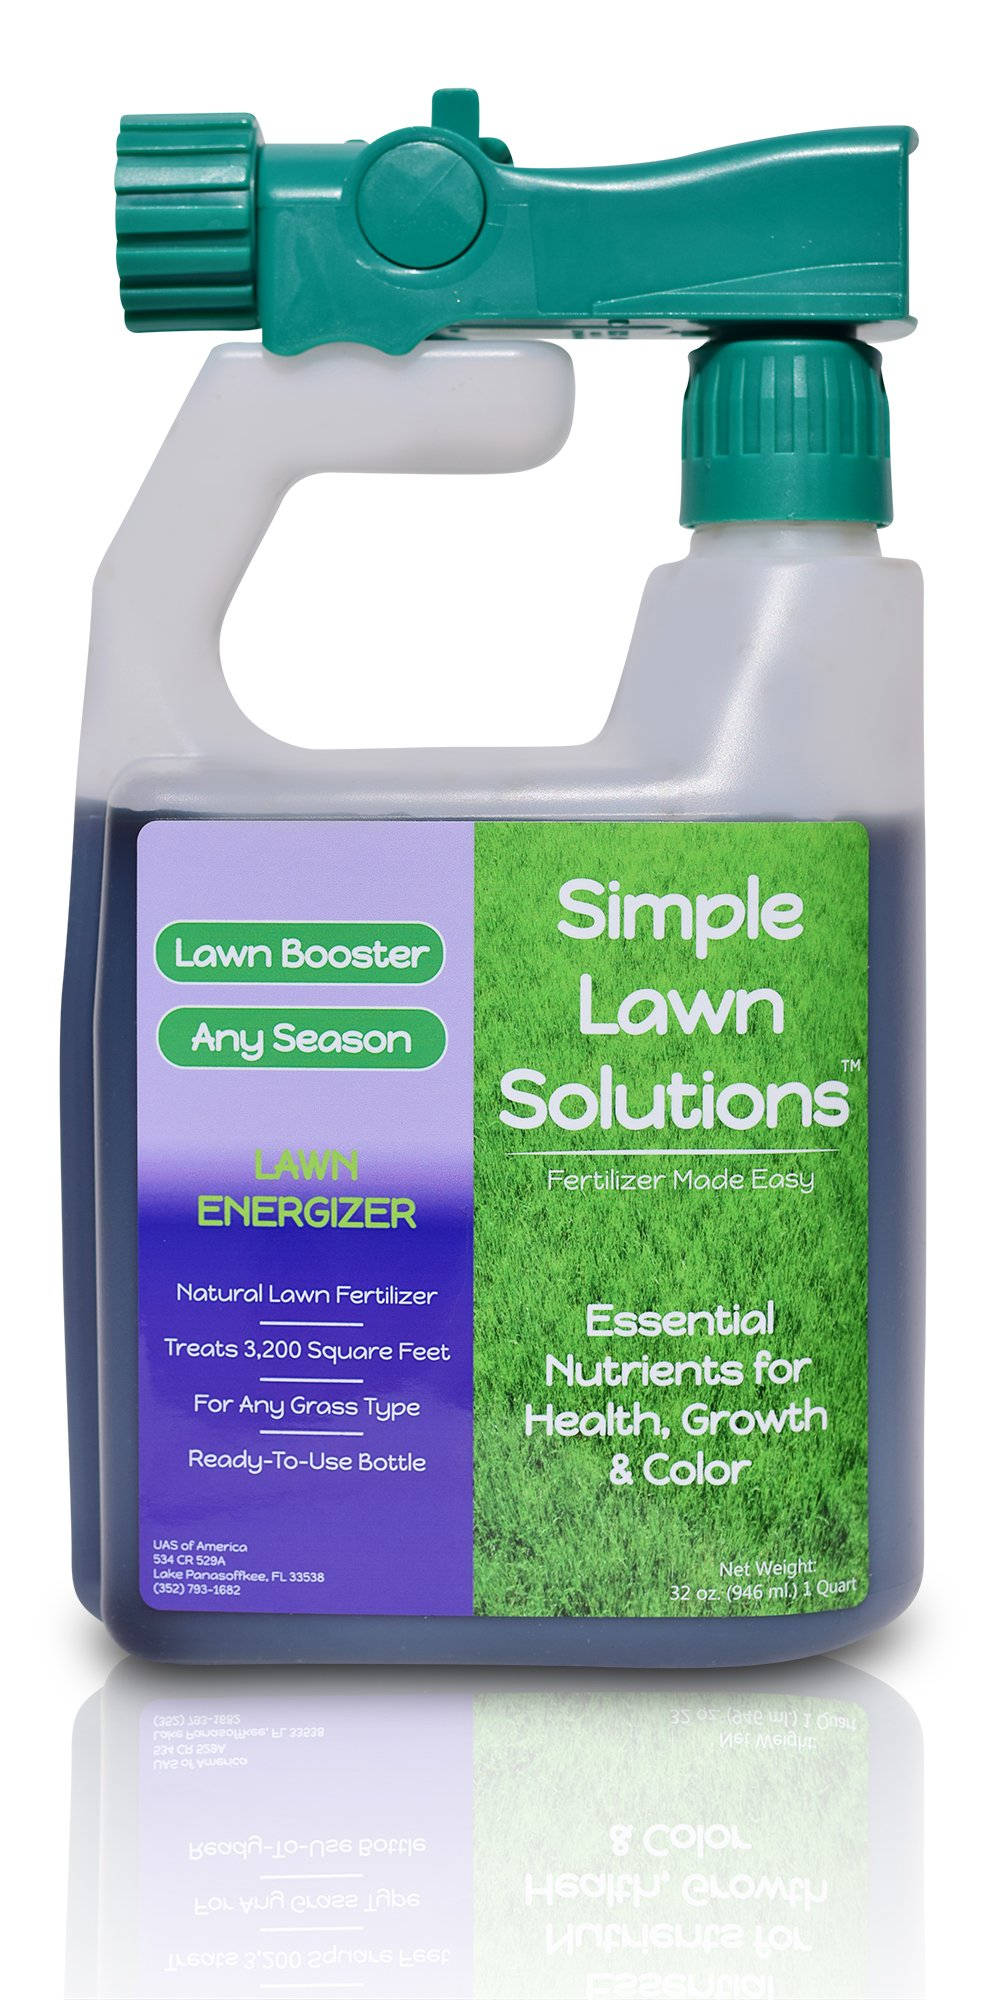 Commercial Grade Lawn Energizer- Grass Micronutrient Booster w/ Nitrogen- Natural Liquid Turf Spray Concentrated Fertilizer- Any Grass Type, All Year- Simple Lawn Solutions- 32 Ounce by Simple Lawn Solutions